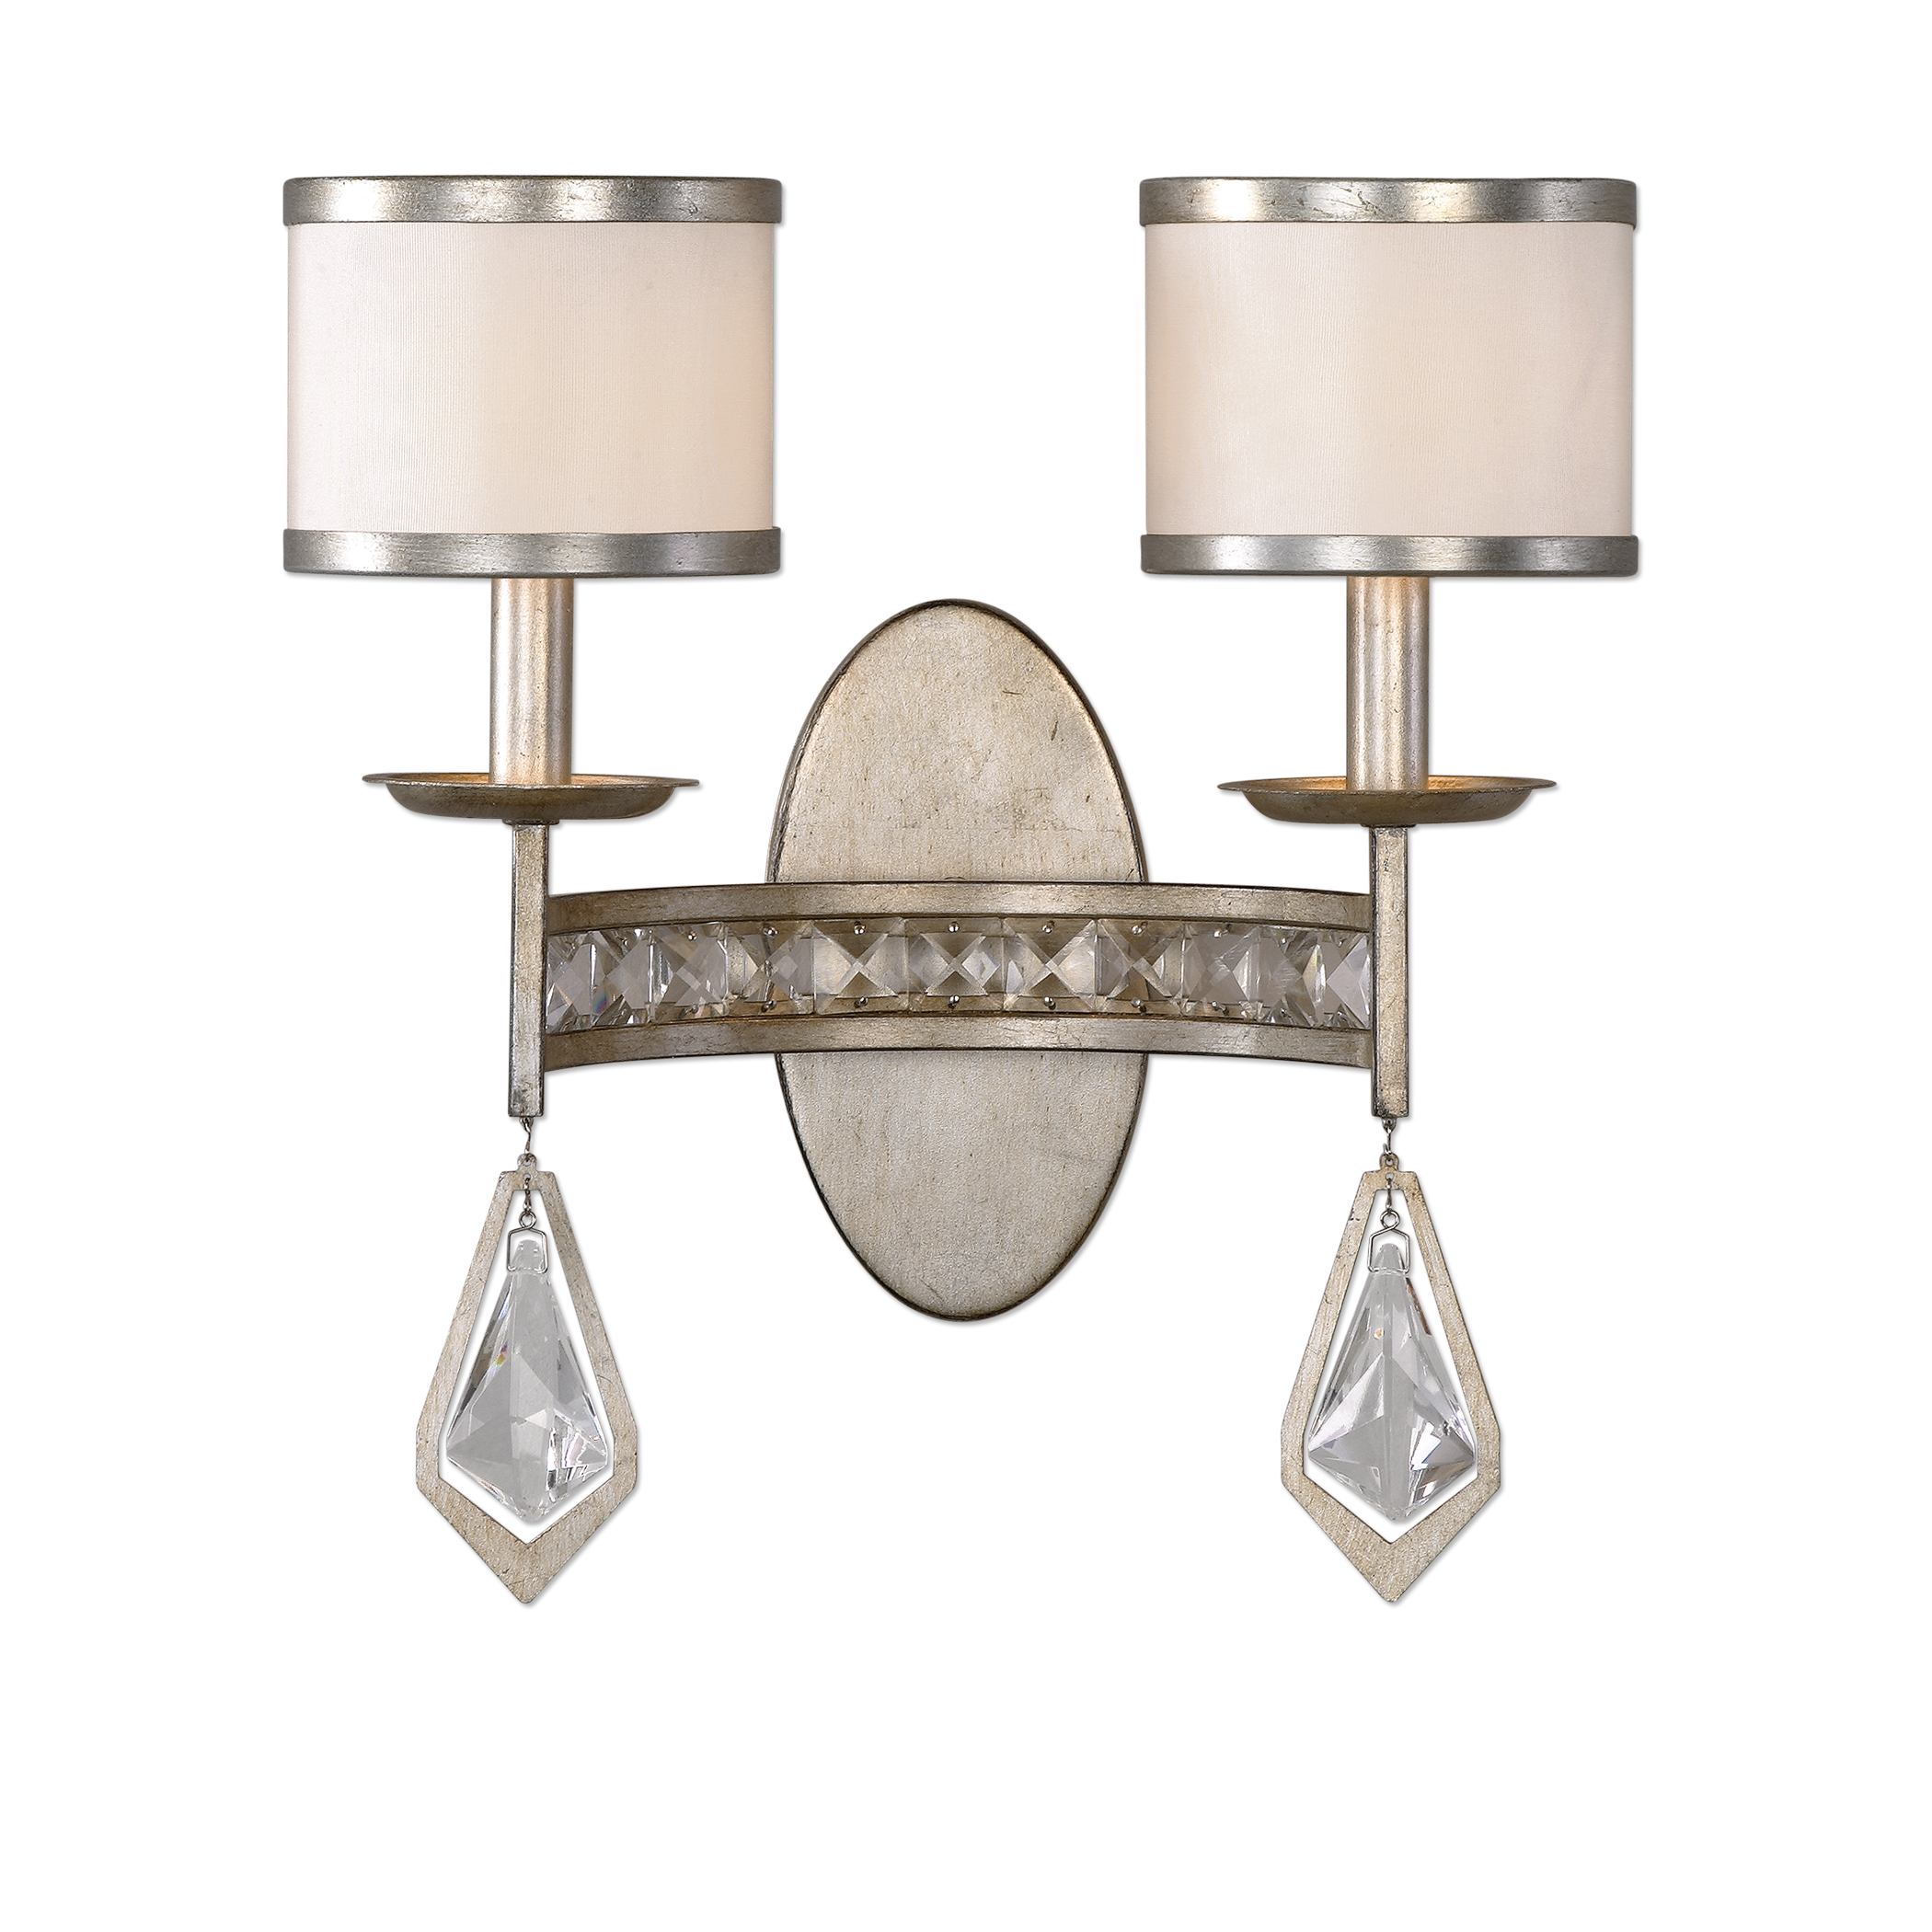 Uttermost Lighting Fixtures Tamworth Modern 2 Light Sconce - Item Number: 22504